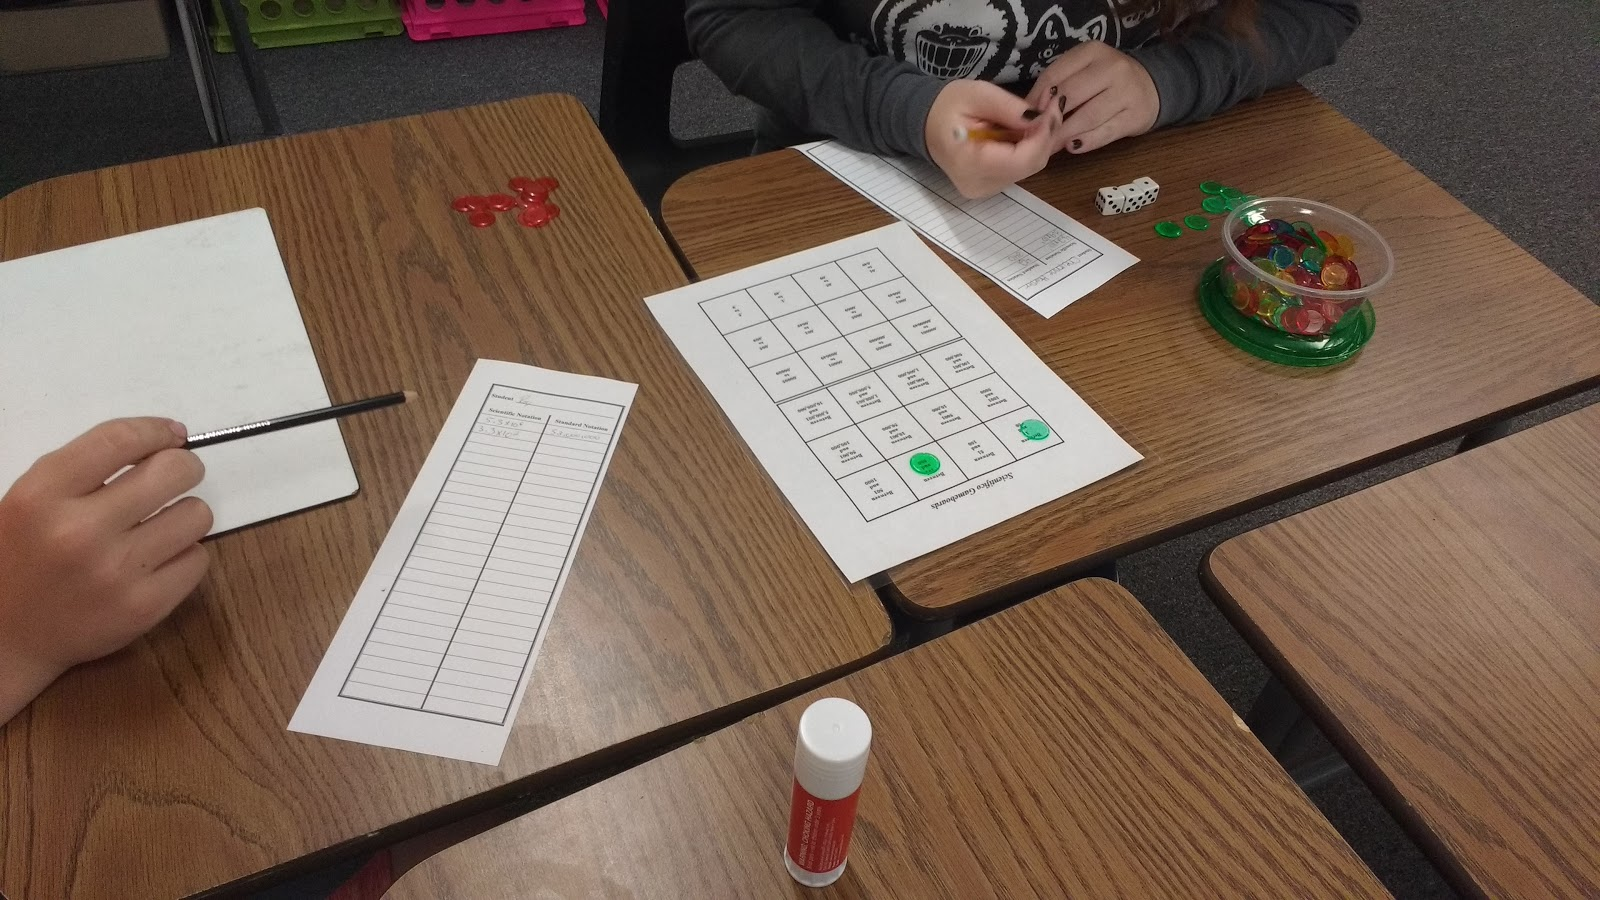 Multiplying Fractions Word Problems Worksheet Math  Love Scientific Notation Practice Activities Convert Cm To Mm Worksheet with Addition For Kindergarten Worksheet Here Are Some Pics Of My Students In Action With This Game Visual Discrimination Worksheets